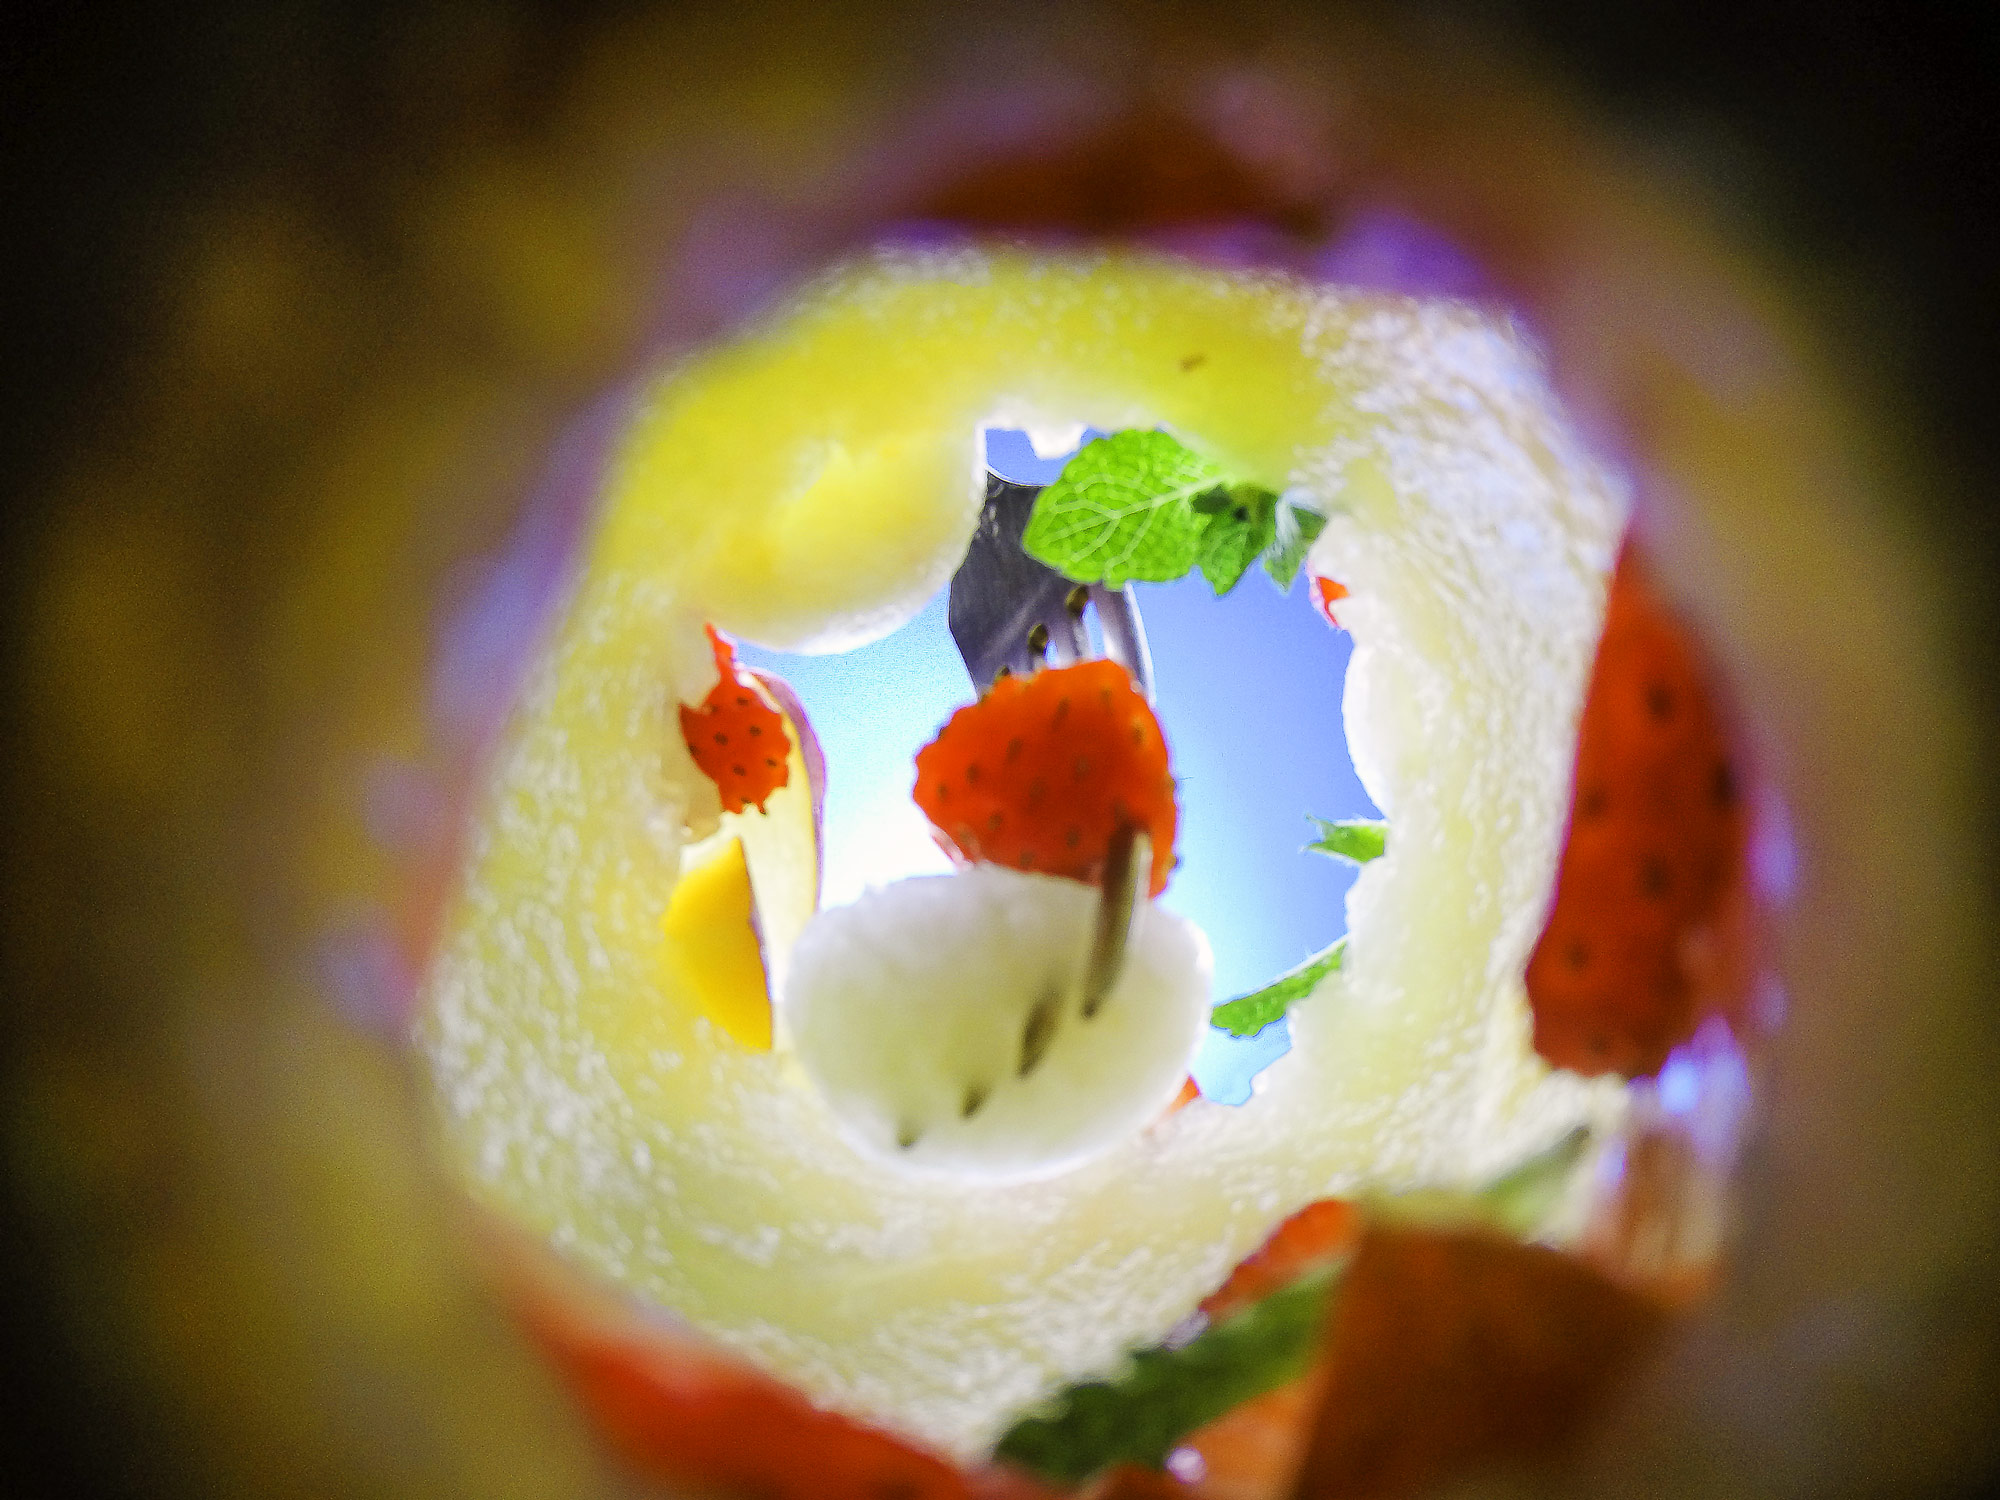 Inside food photo series, depicting a close up view from the bottom of a fruit salad served in a carved out melon. Looking up as a fork picks out a piece of melon and strawberry.